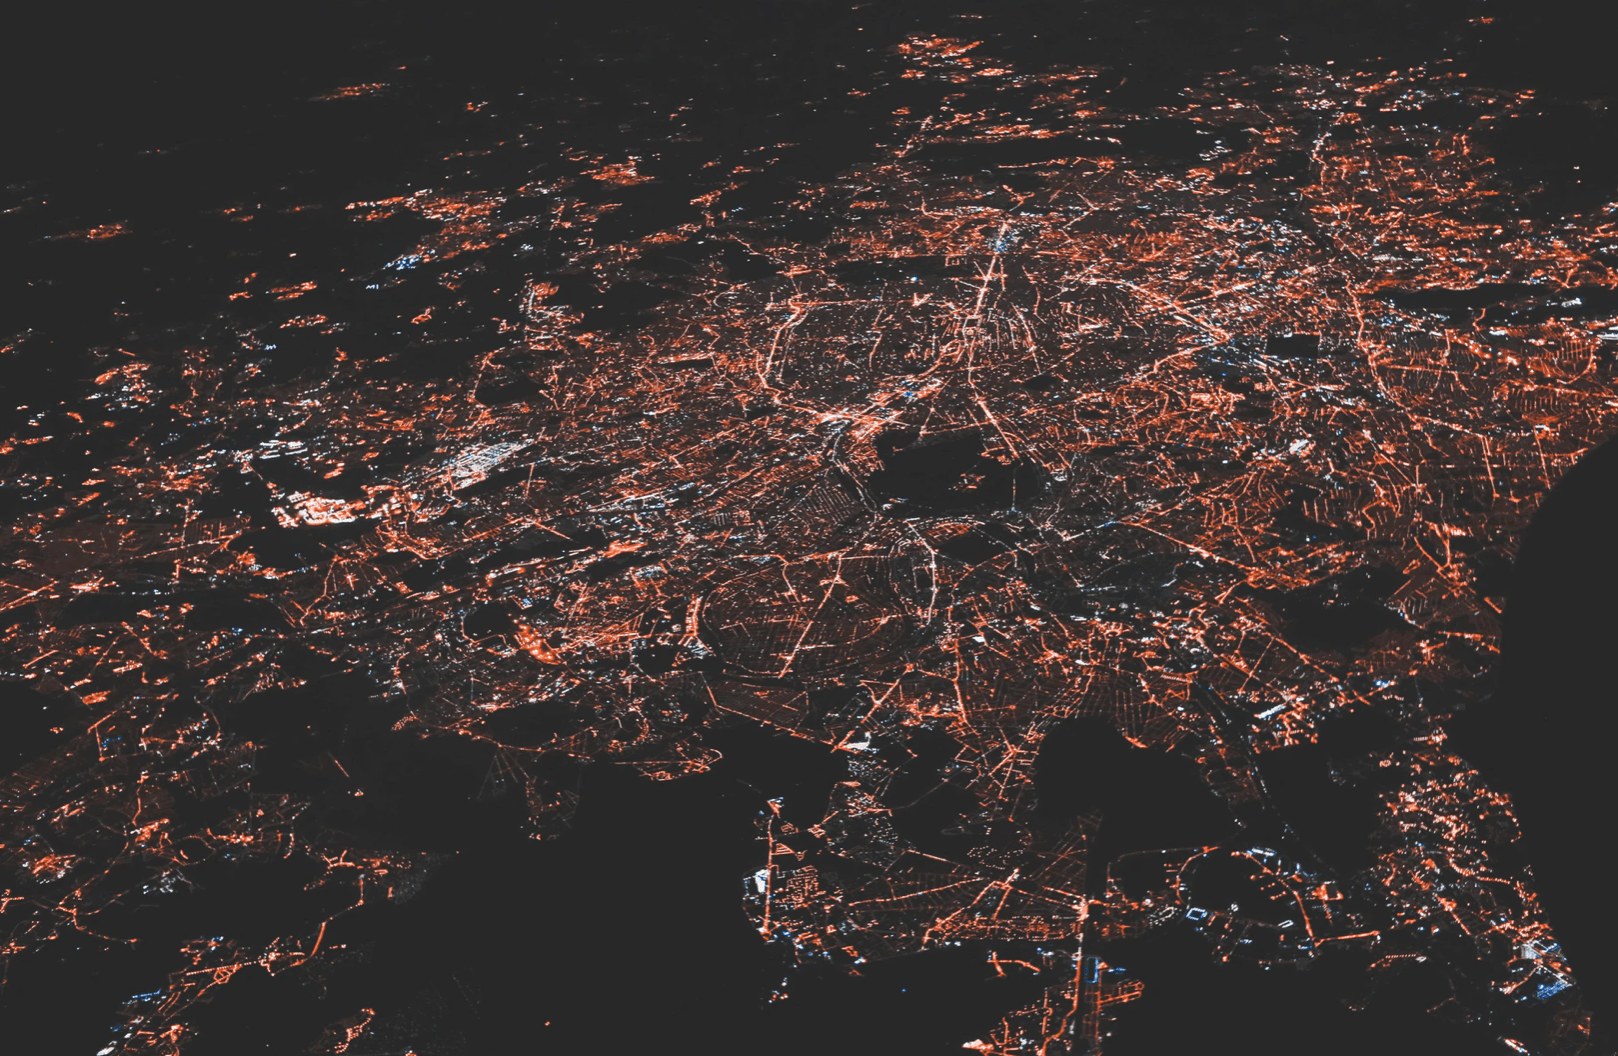 birds eye view shot of cityscape at night